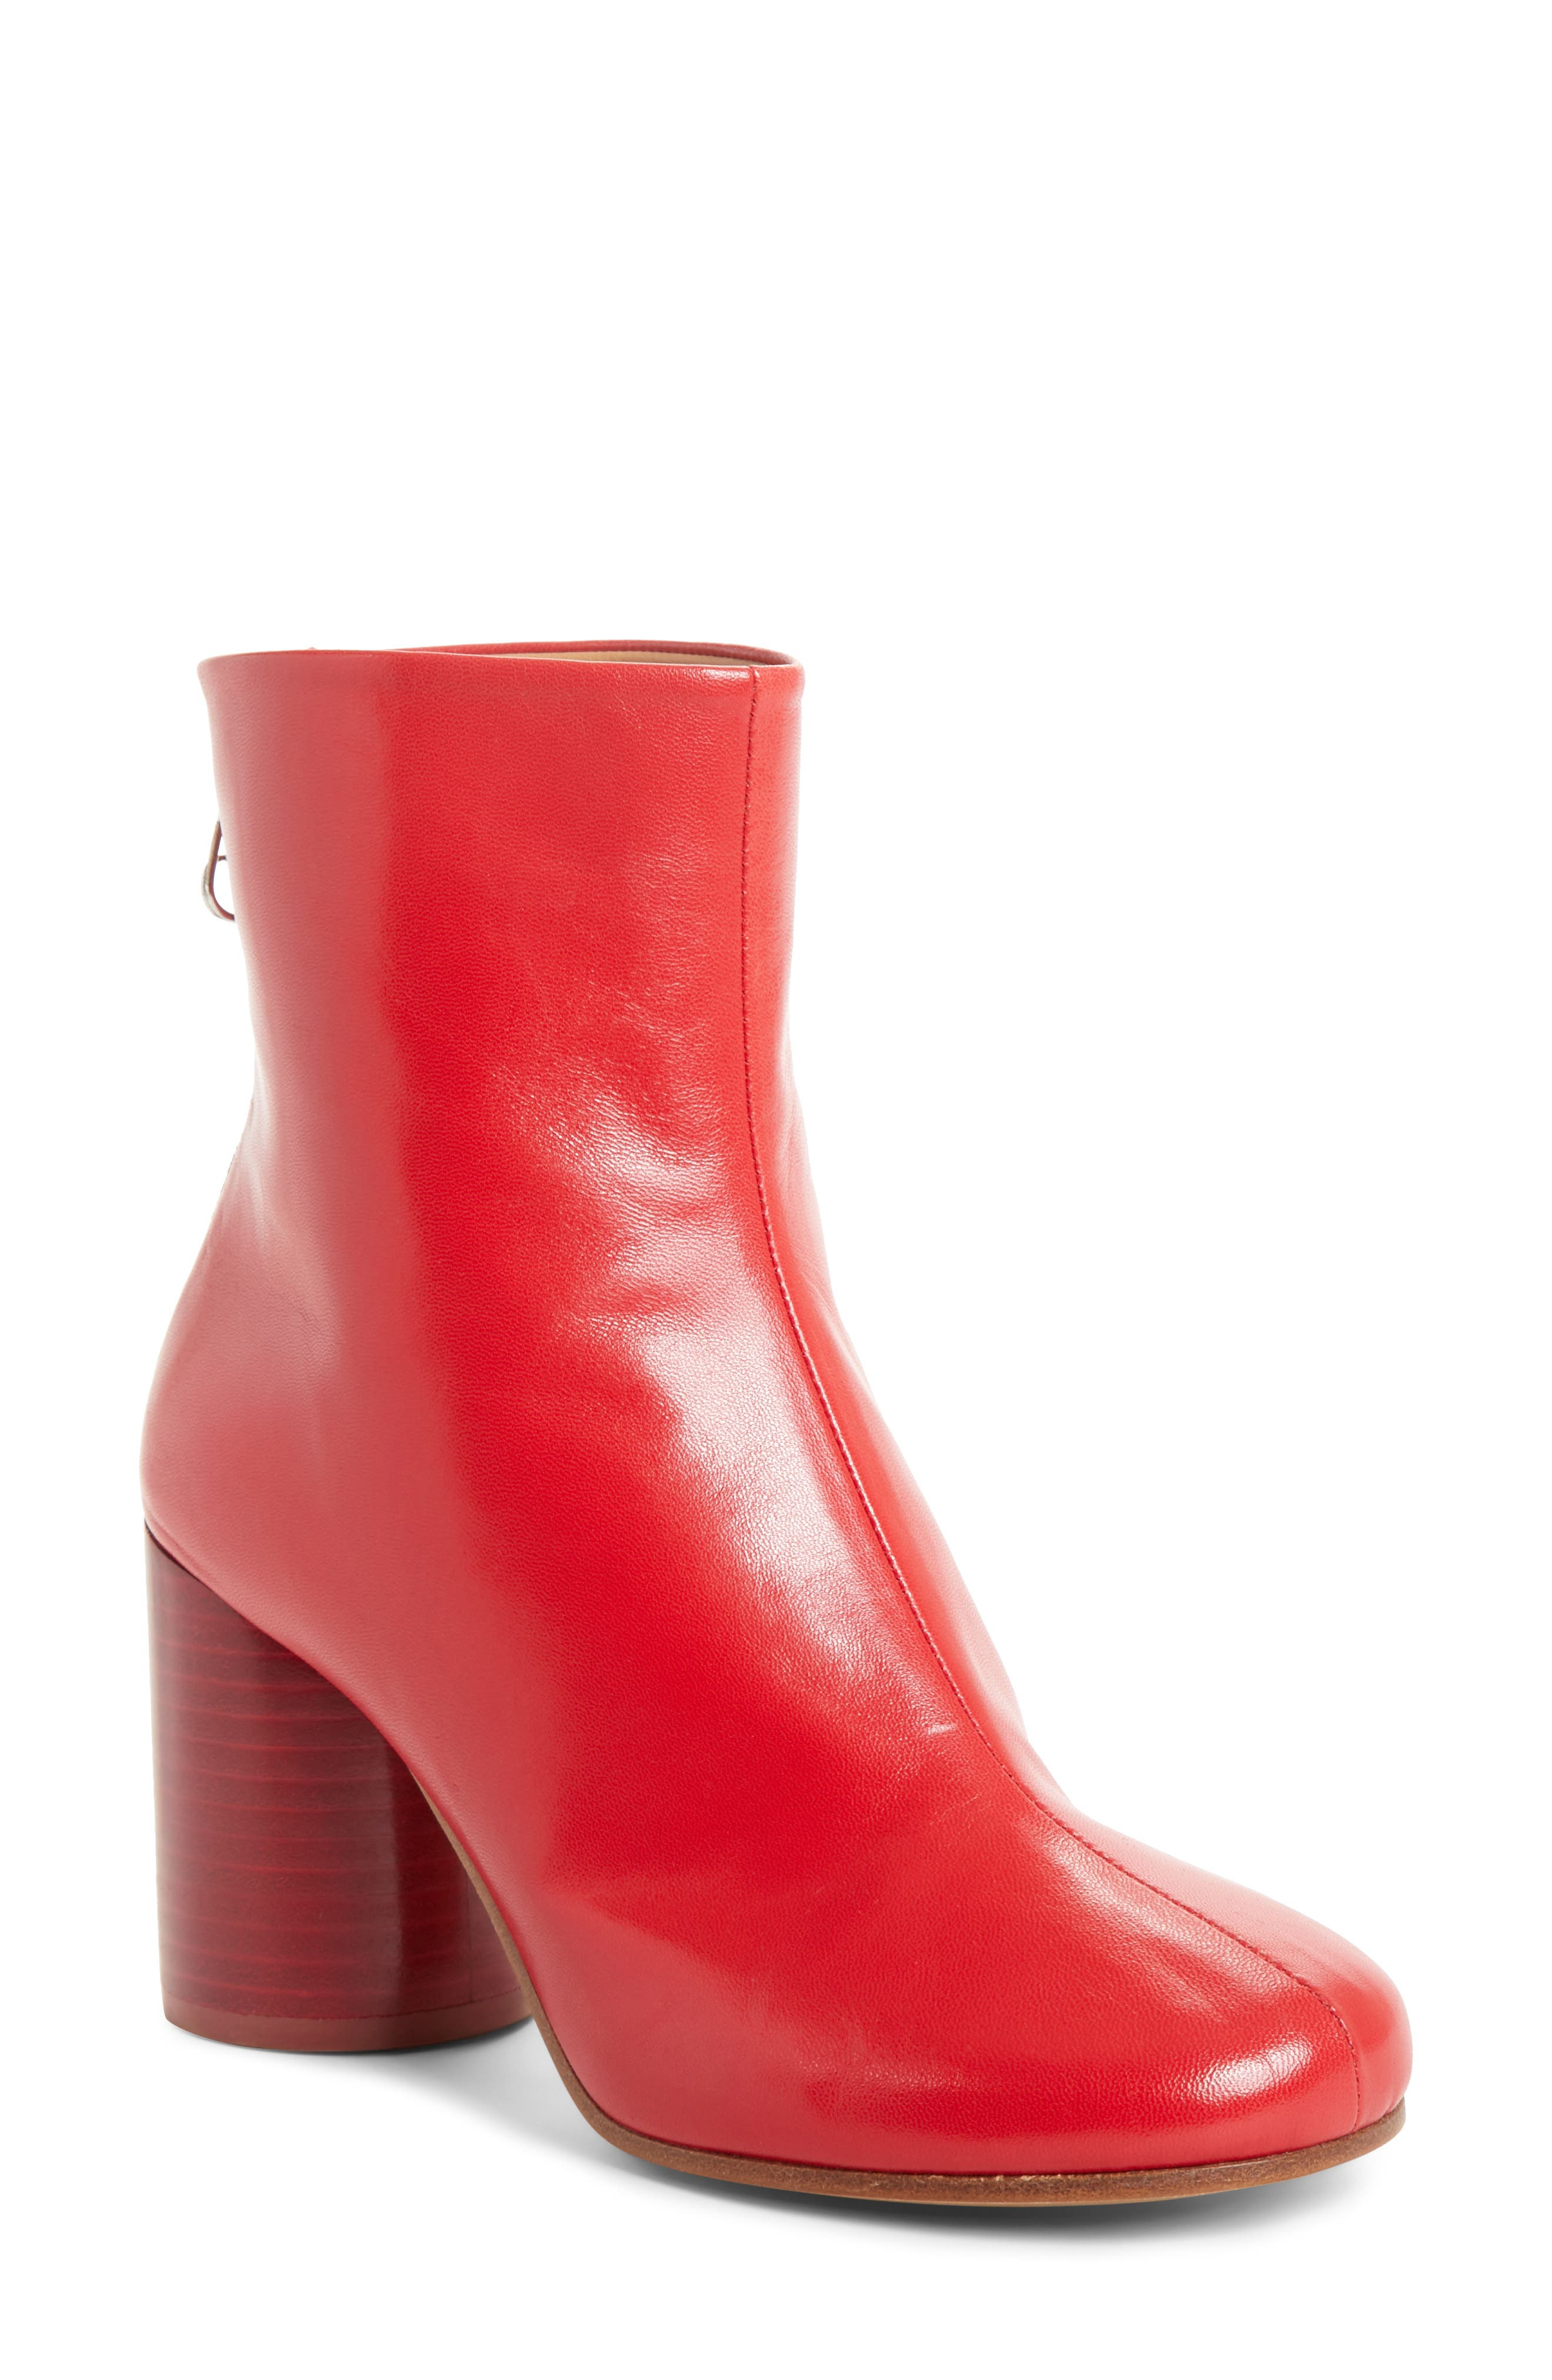 Alternate Image 1 Selected - Maison Margiela Round Heel Ankle Boot (Women)